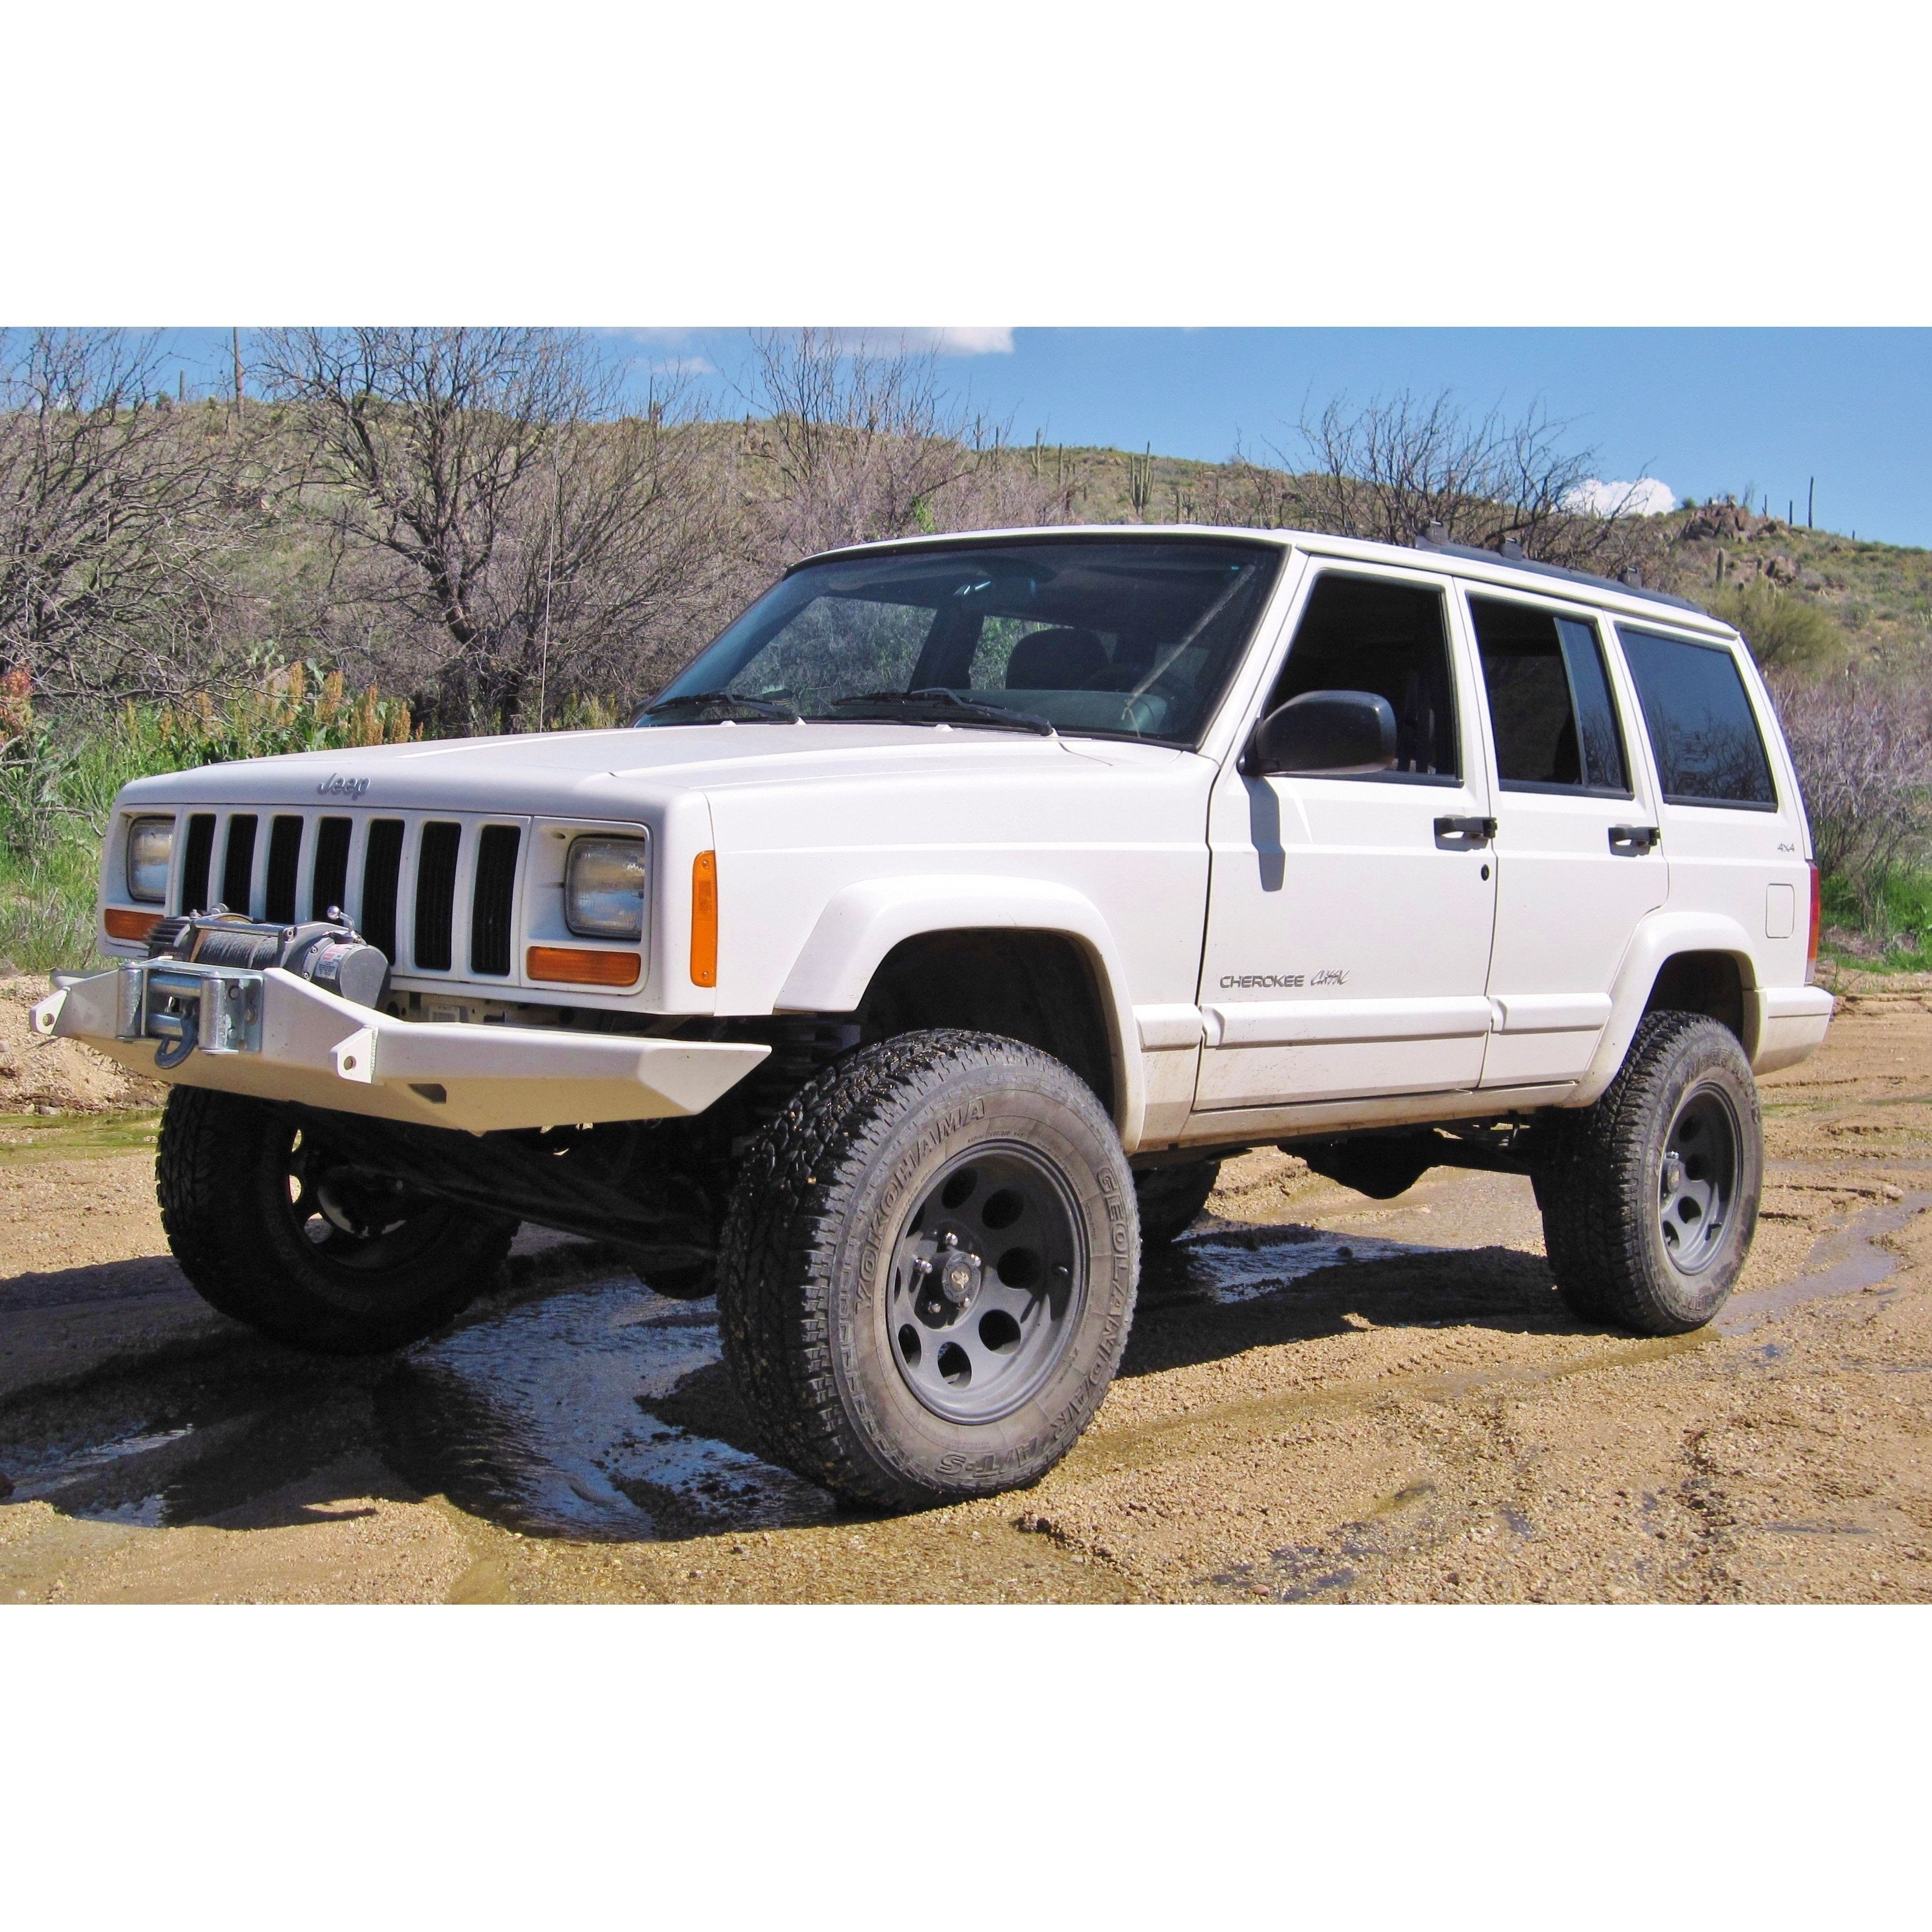 Xj Cherokee Front Bumper W O Stinger Stealth Style